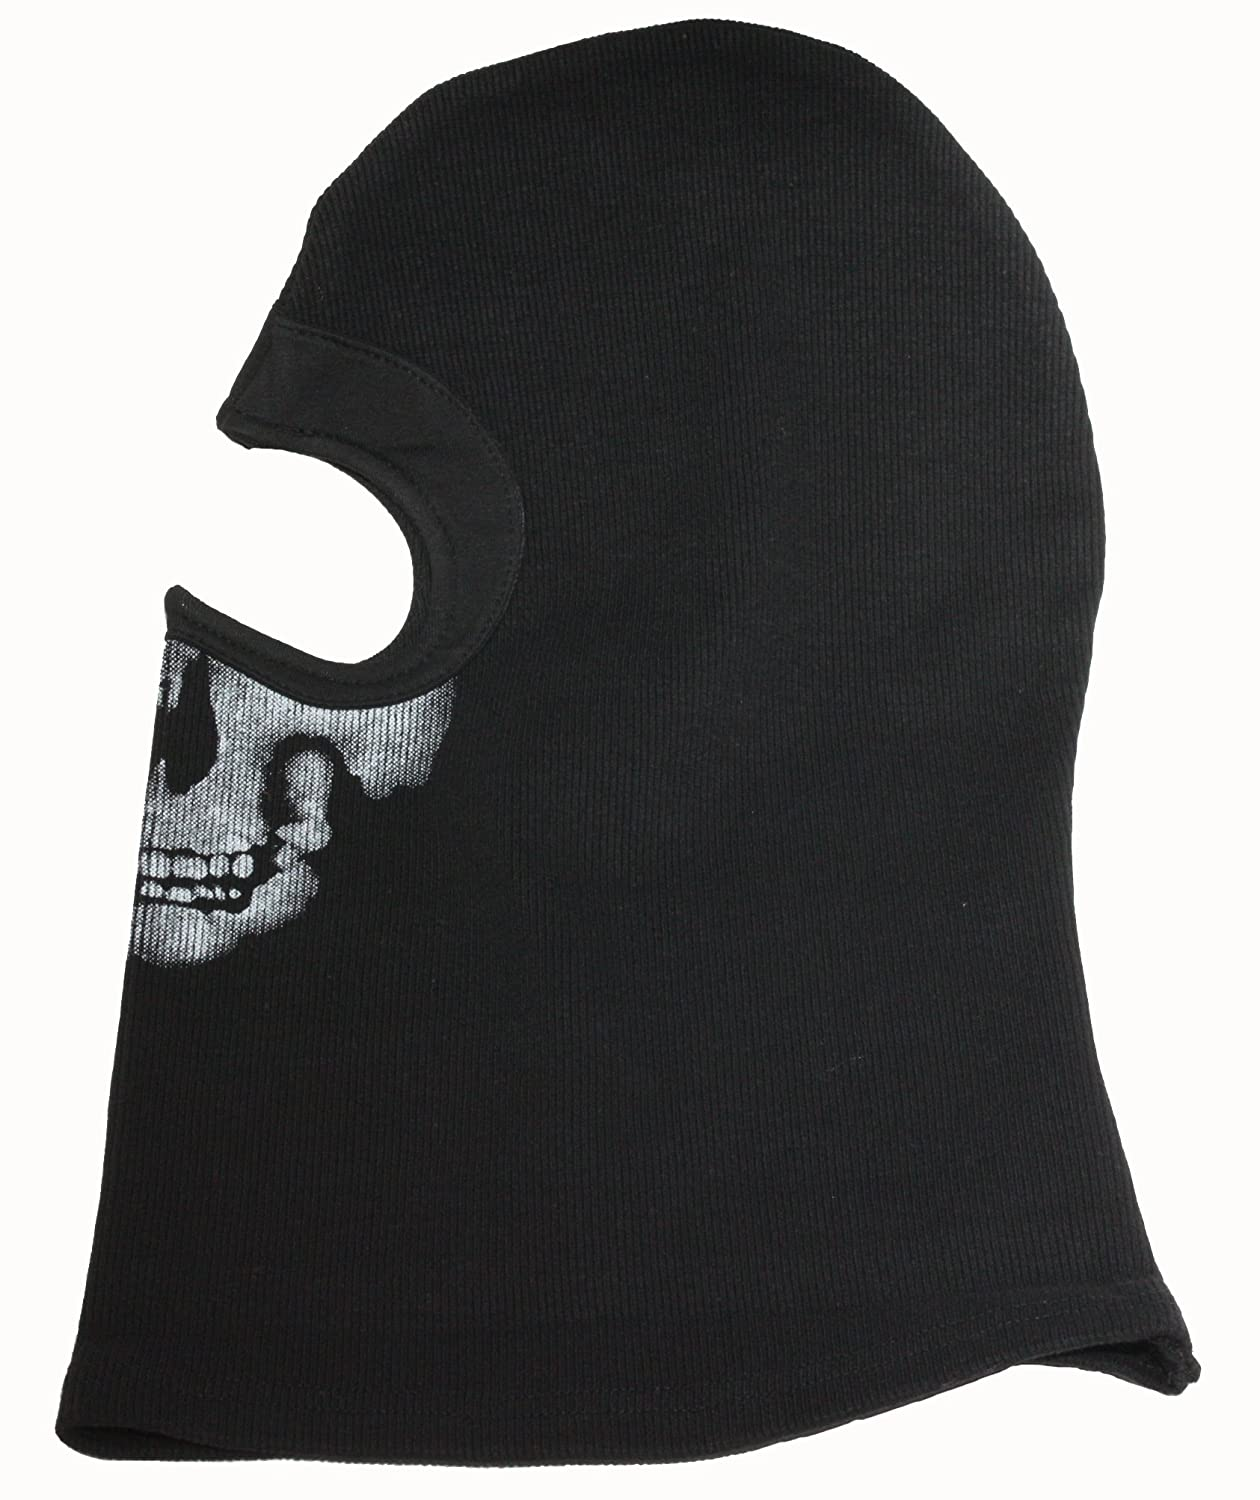 Amazon.com: MW2 Ghost wind Skull mask (balaclava) skull / skeleton ...